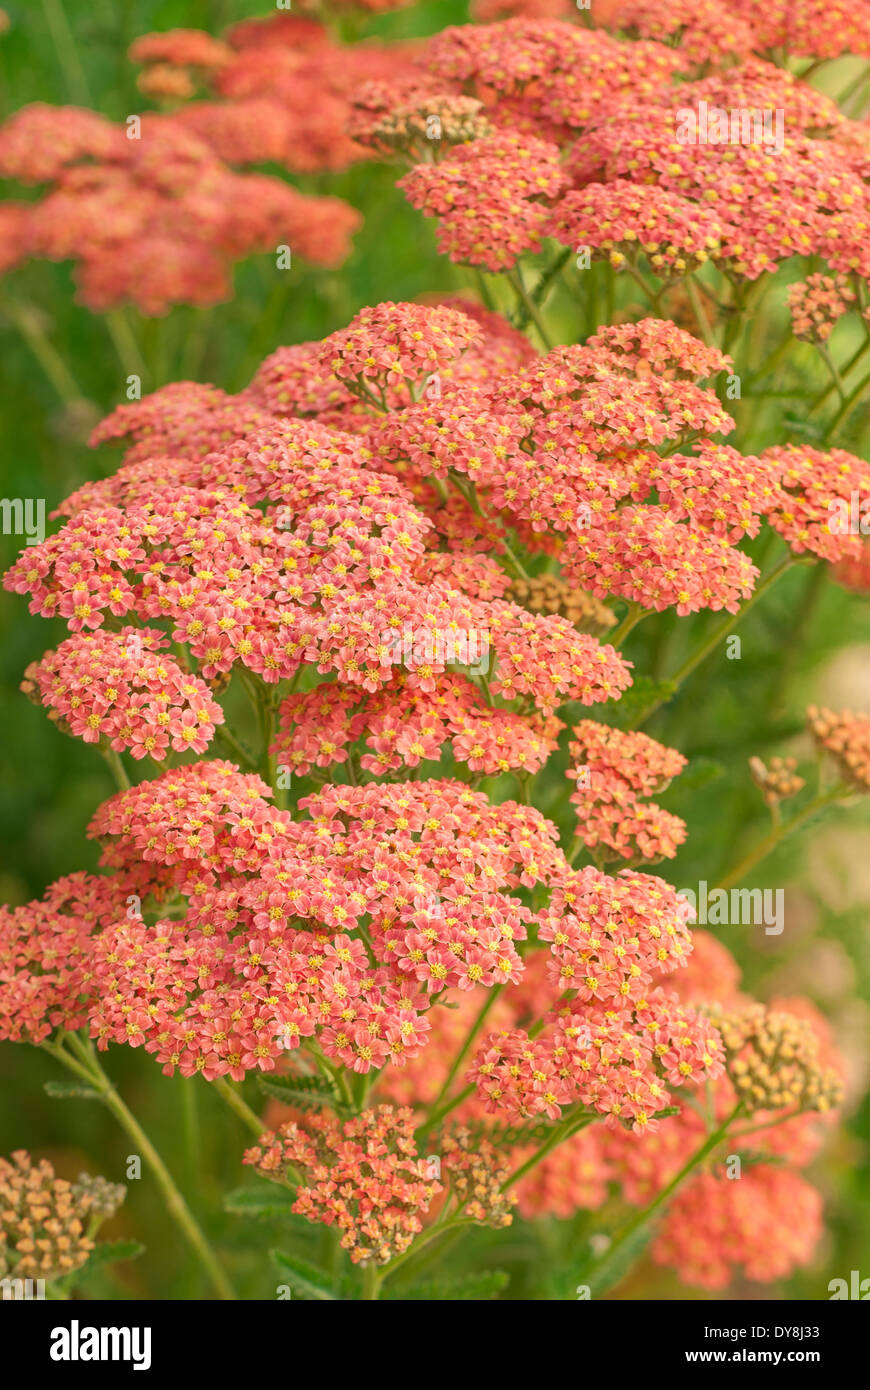 Close up of Achillea millefolium Peachy Seduction, Yarrow, Tutti Frutti Series. Salmon pink flowers. - Stock Image